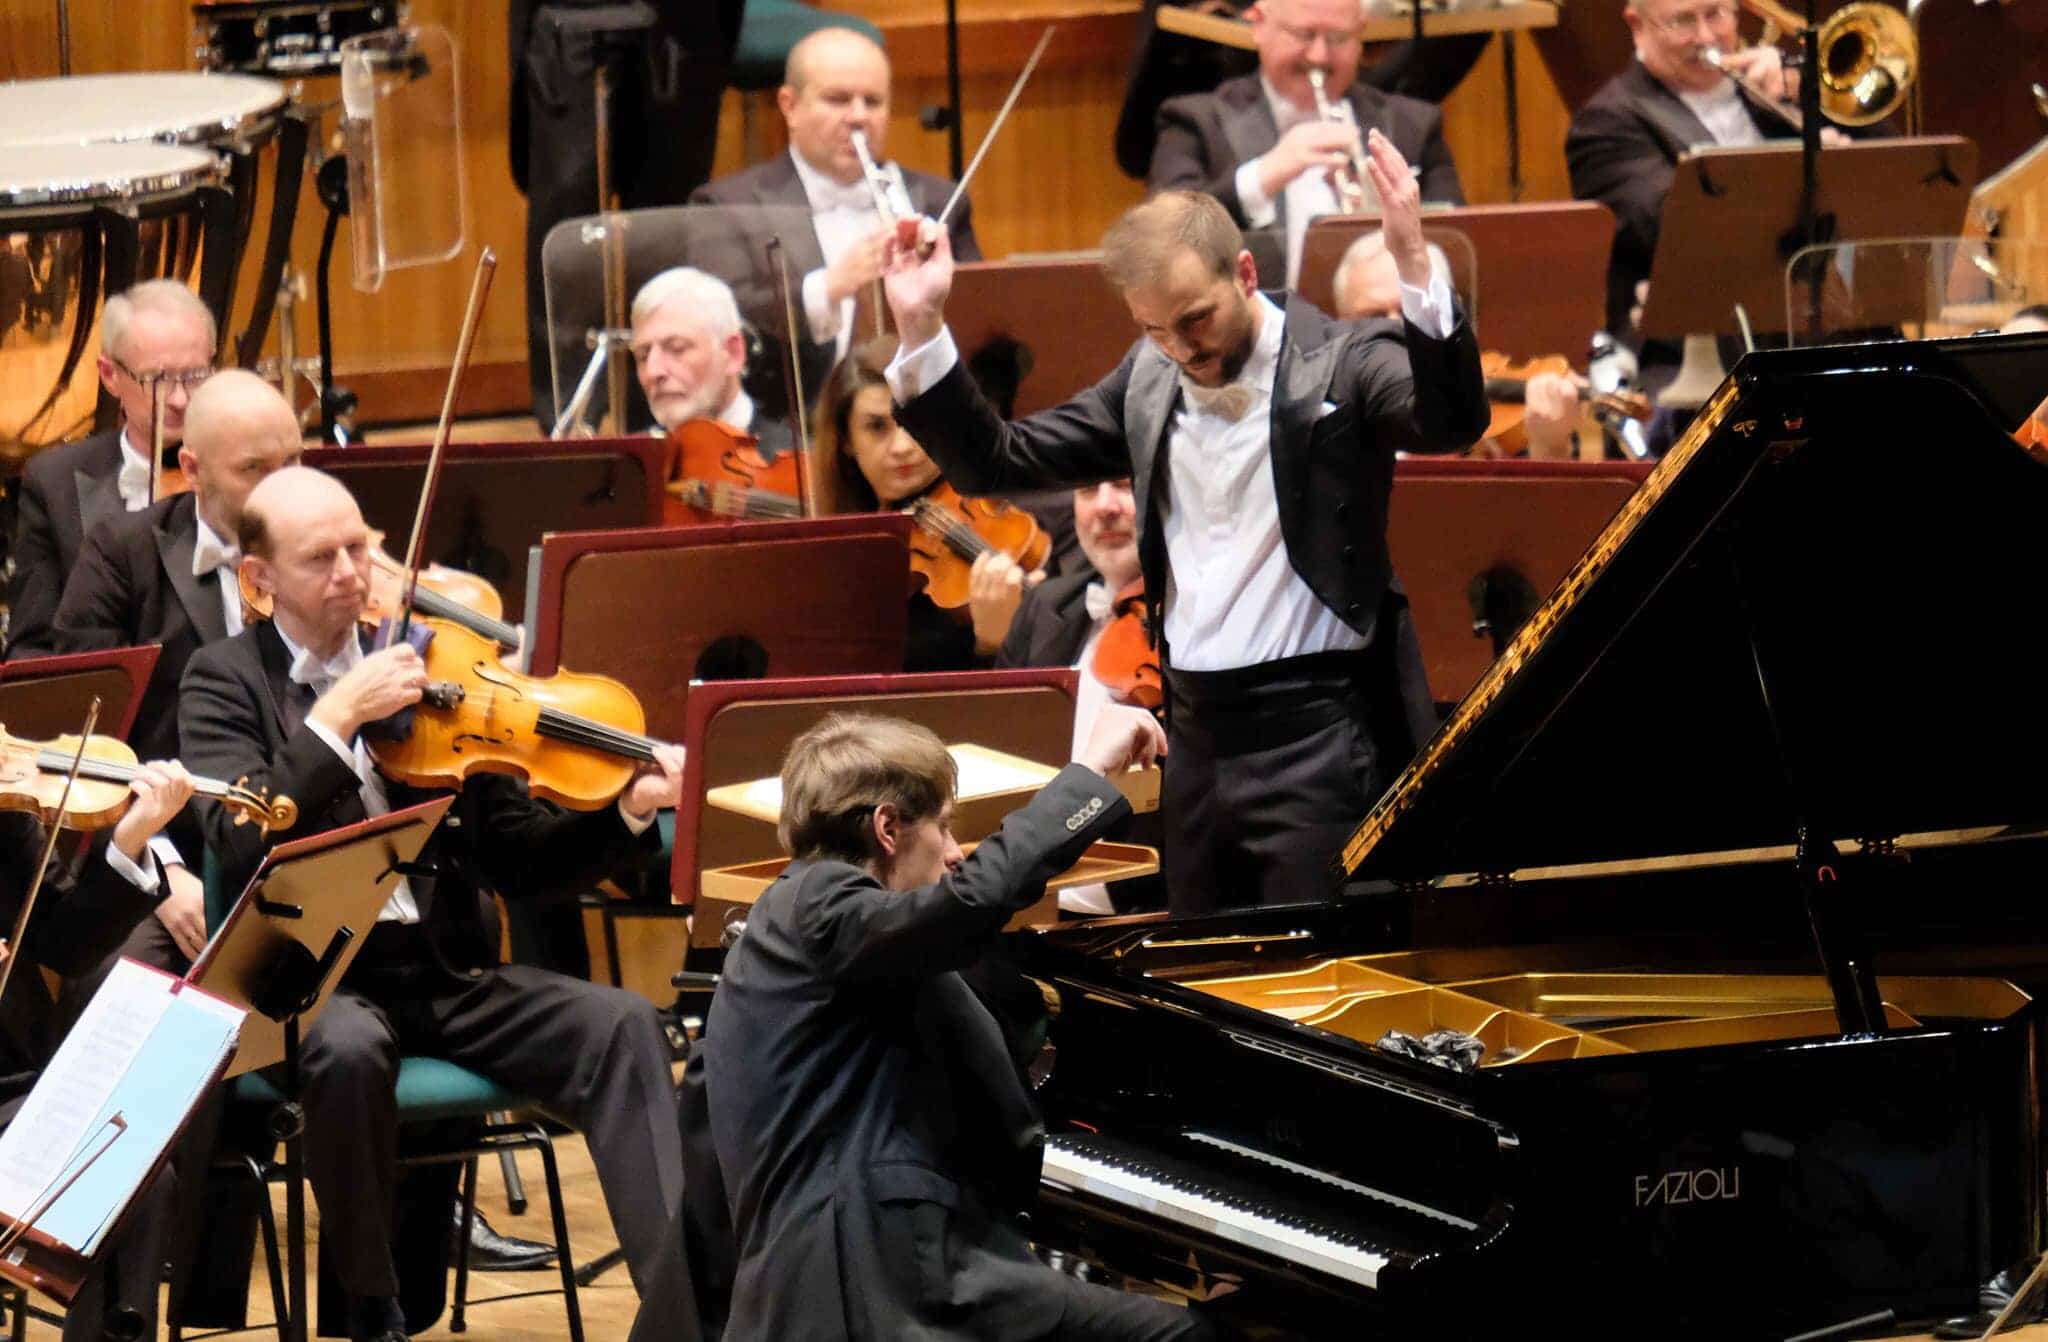 Protesting pianist: Why I refused to play at Paderewski farce